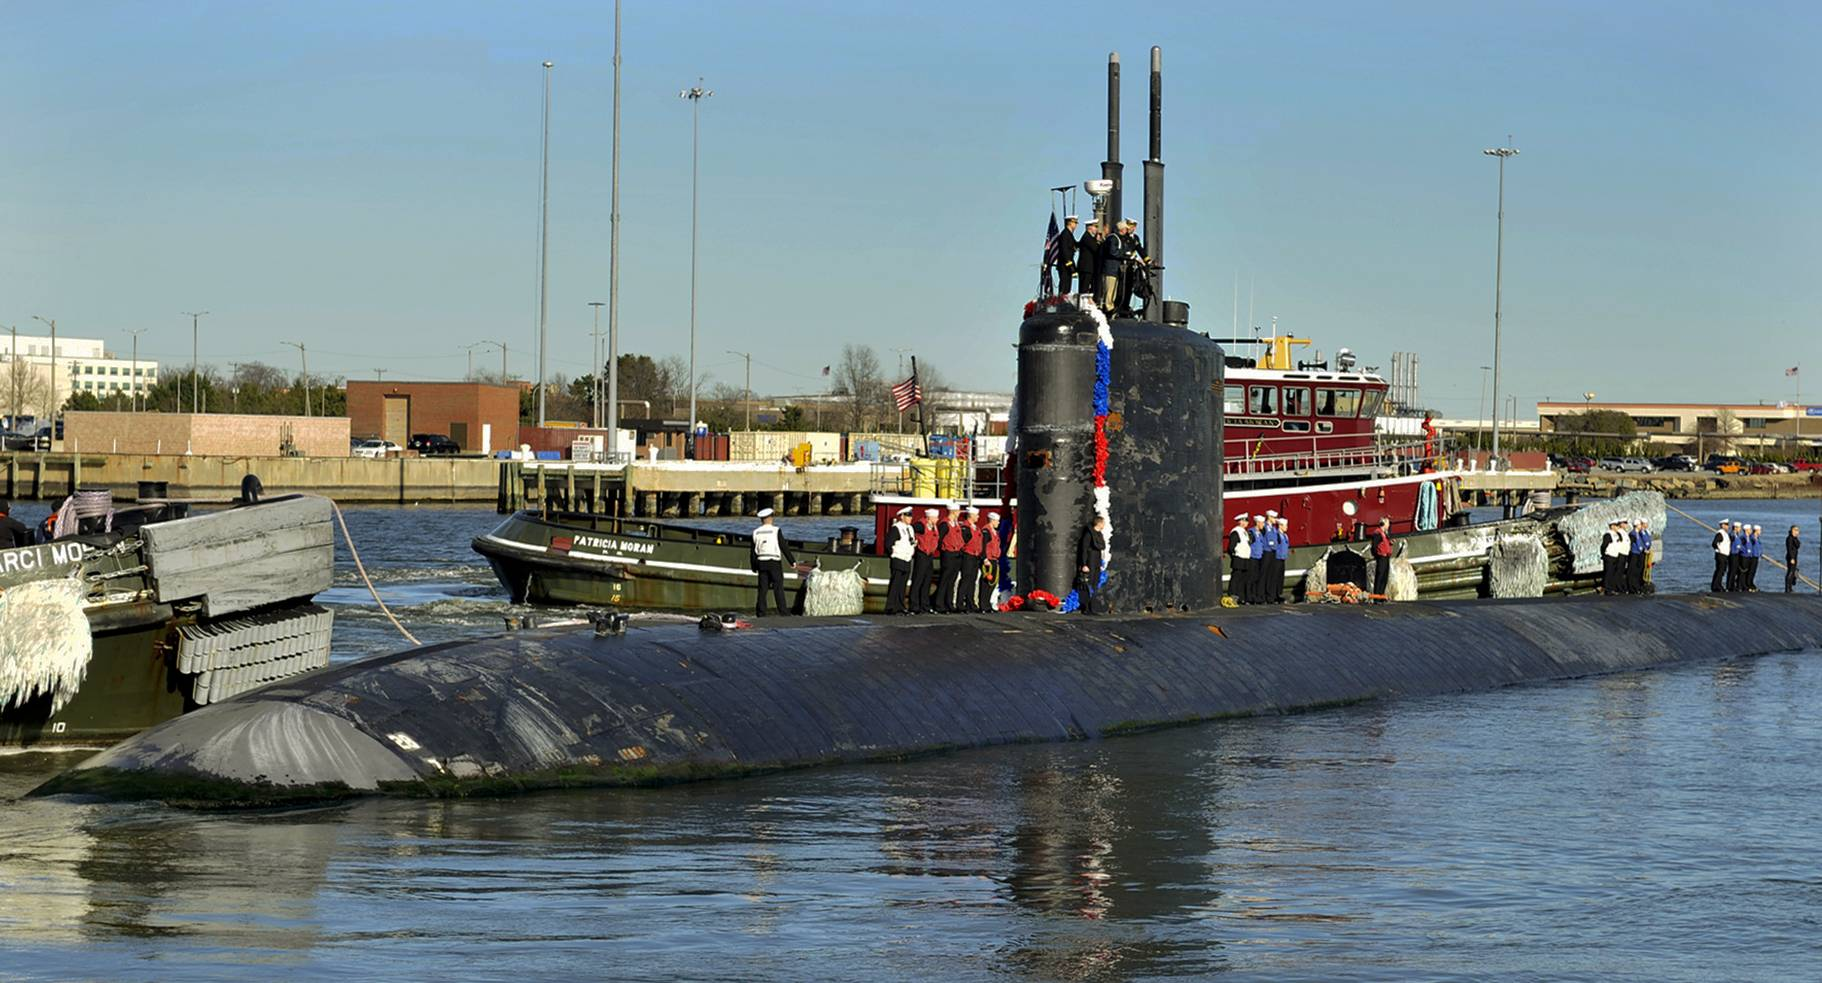 The Los Angeles-class attack submarine USS Scranton returns to Naval Station Norfolk, Va., from a regularly scheduled deployment. Scientists have concluded submarine sailors, who traditionally begin a new workday every 18 hours, show less fatigue on a 24-hour schedule.